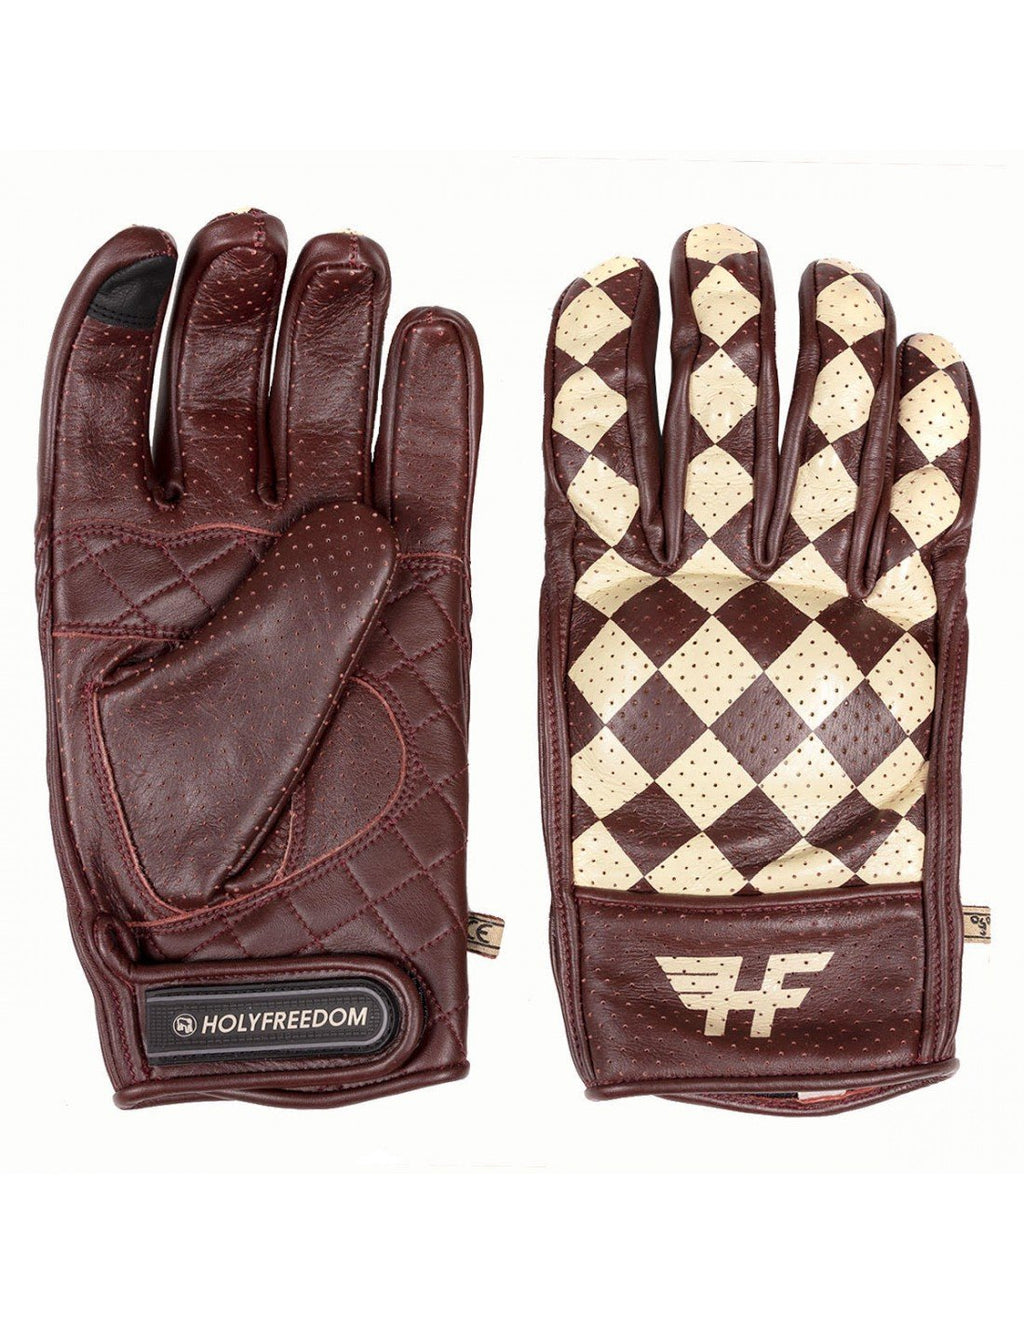 Holy Freedom 2021 Bullit Unsulto Burgundy and Cream Gloves